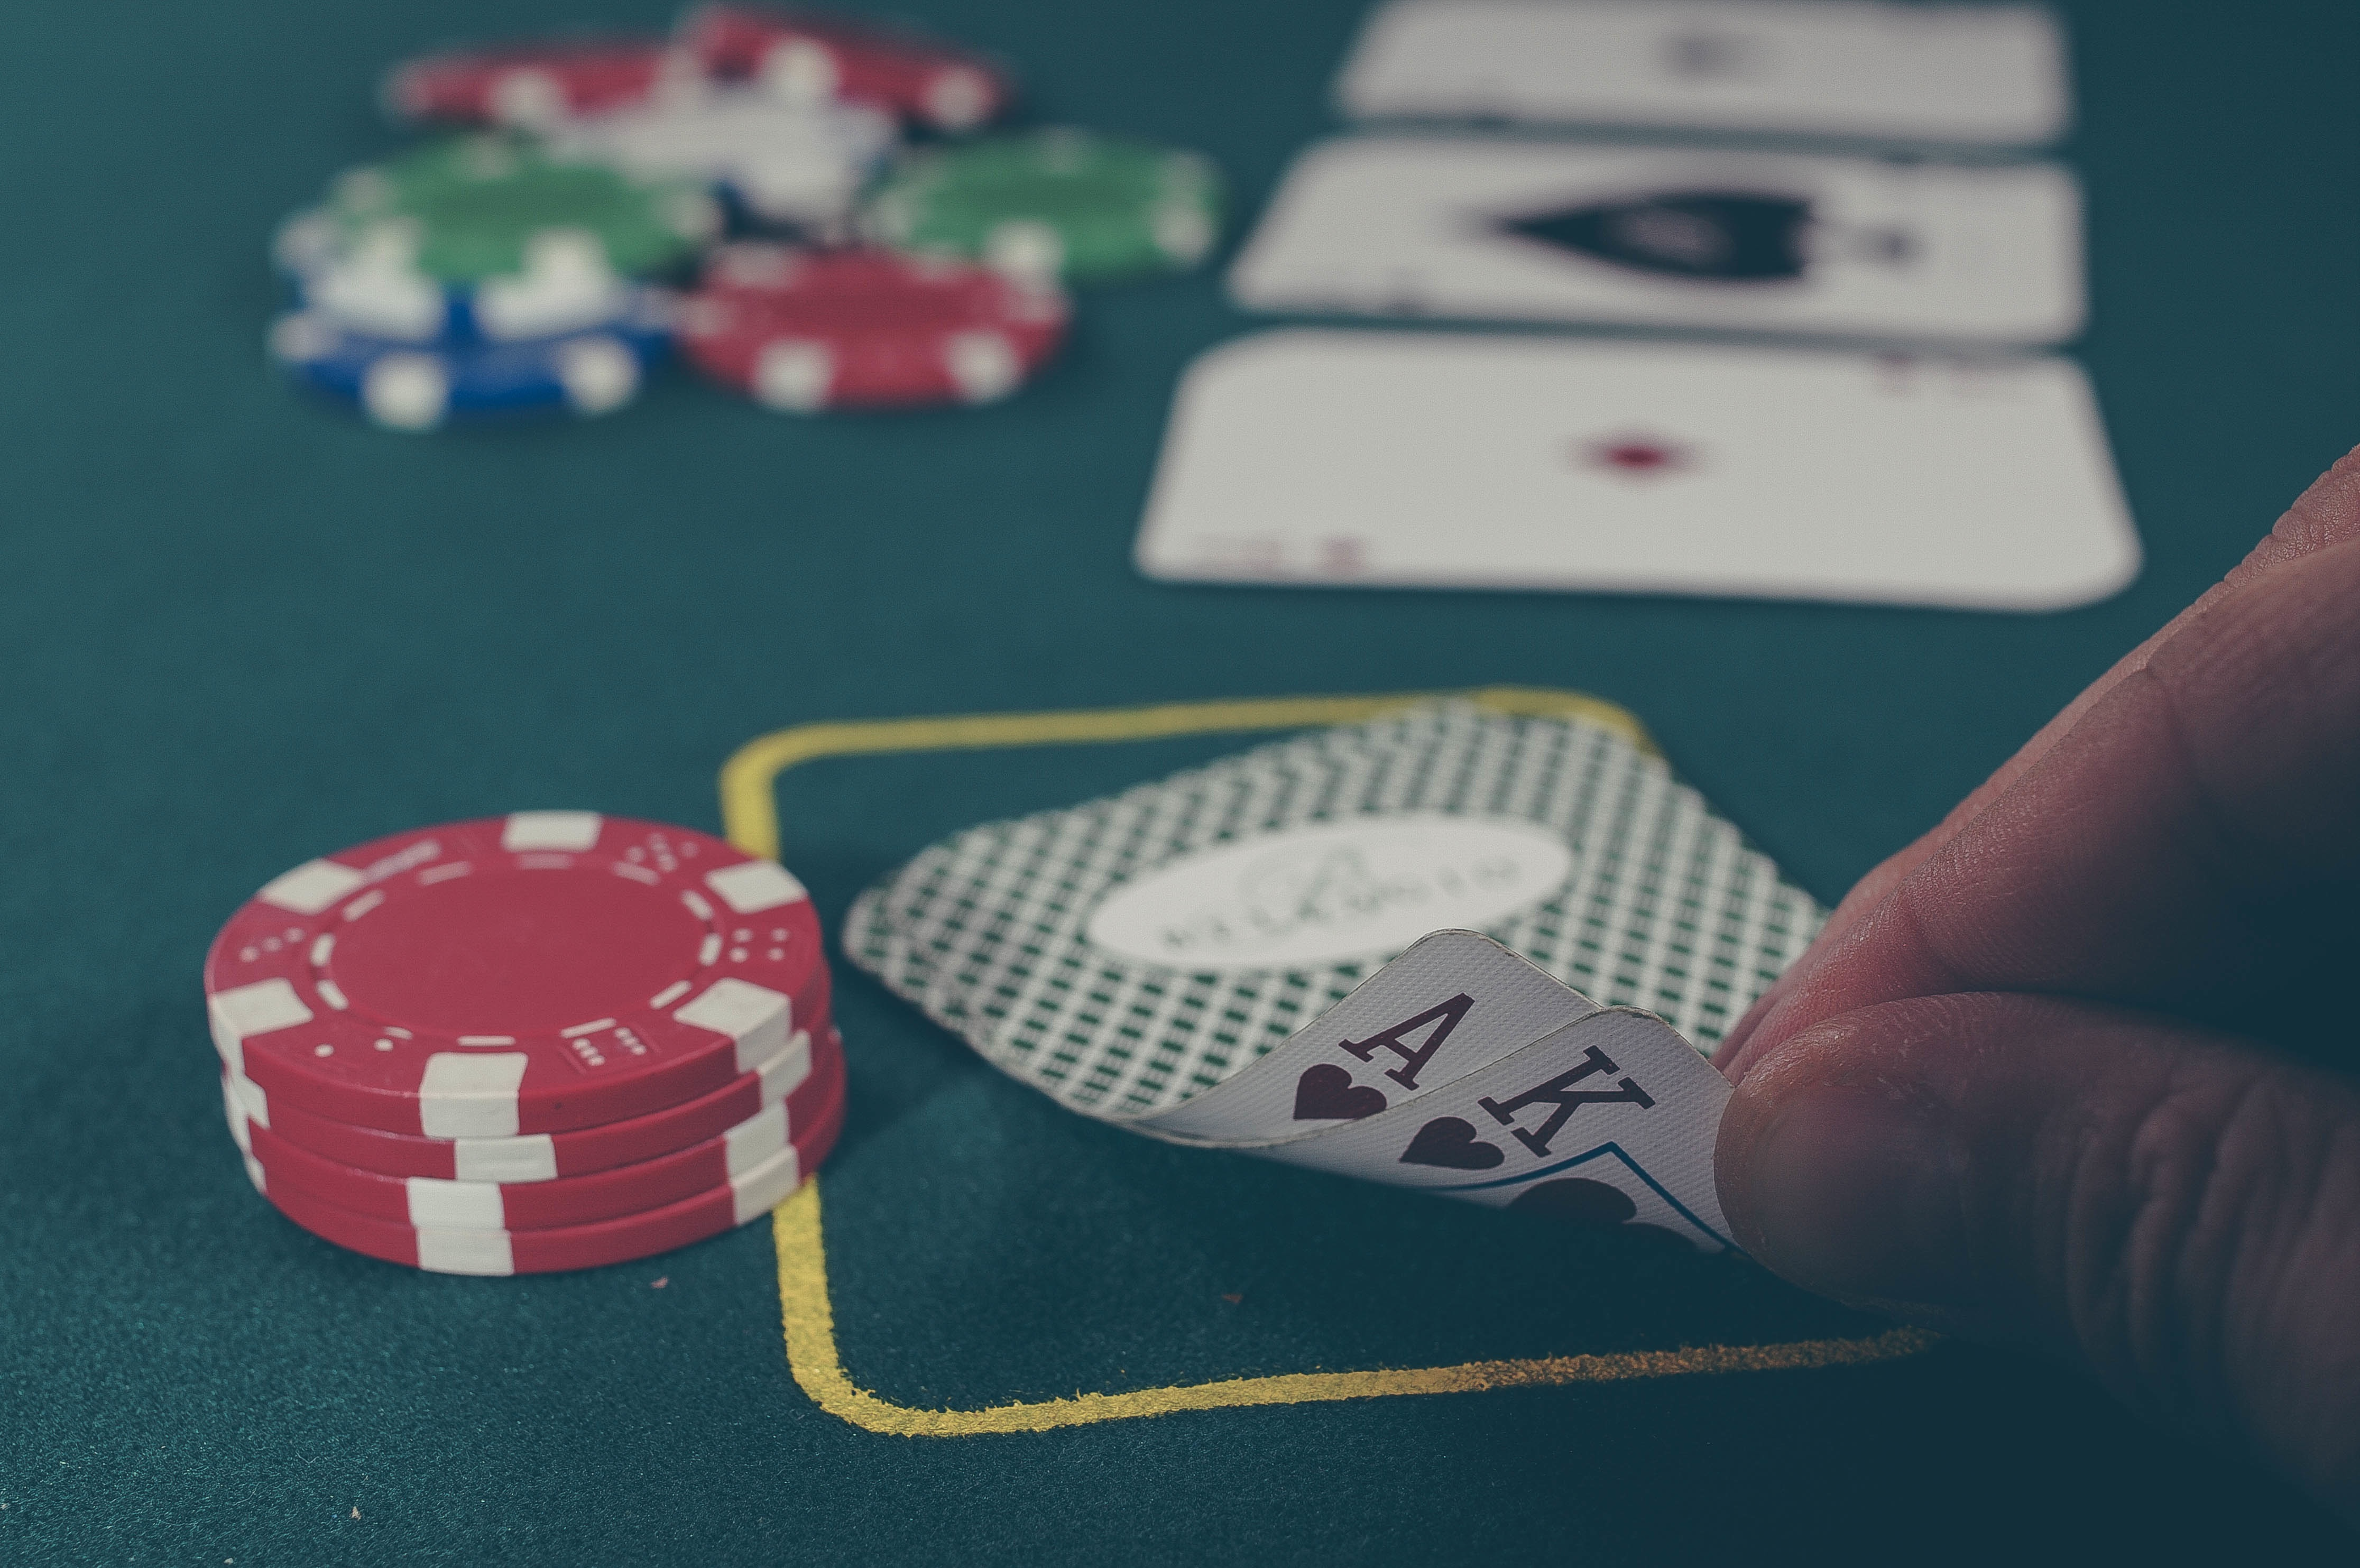 Poker cne casino cocoa beach casino